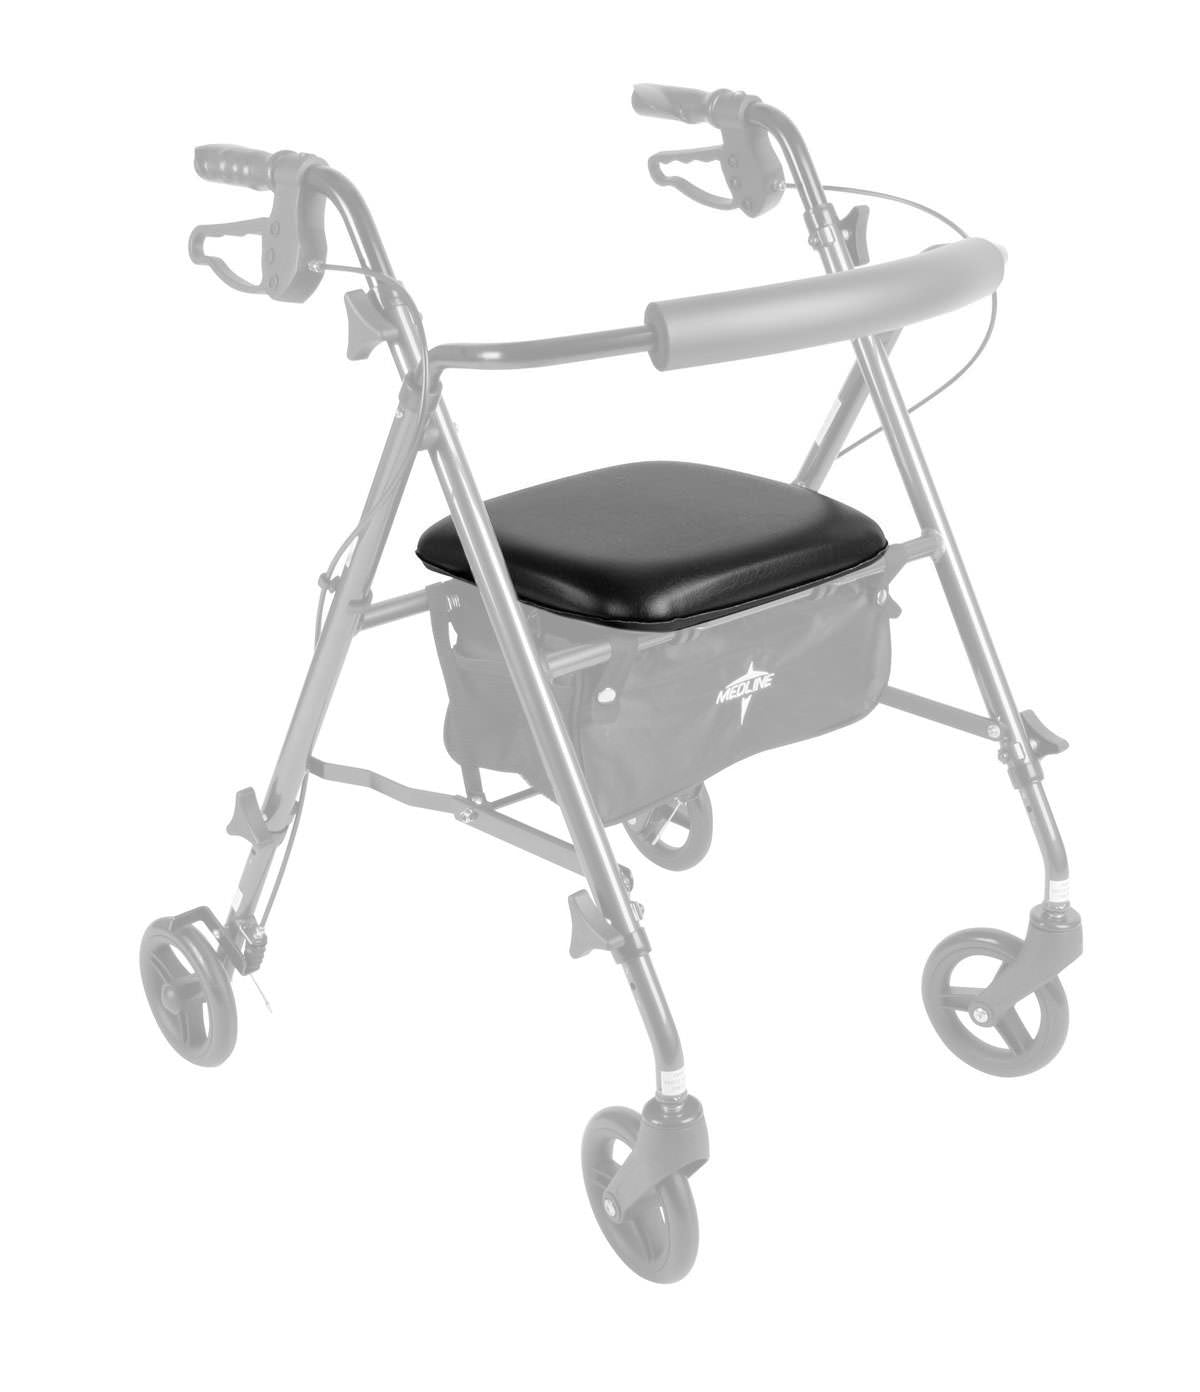 Seat Assembly with Hardware for Medline Ultralight Freedom Rollator